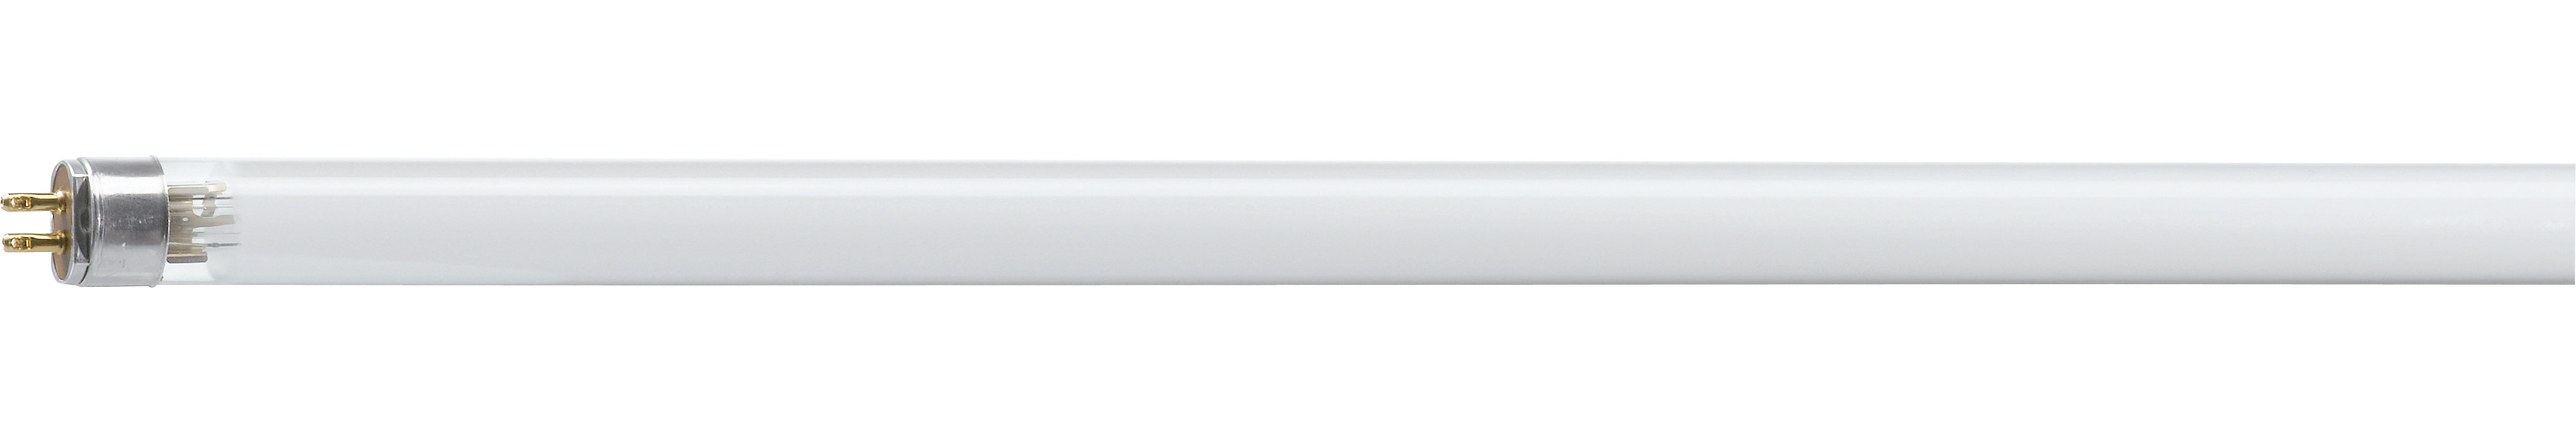 Temperature independent fluorescent lighting